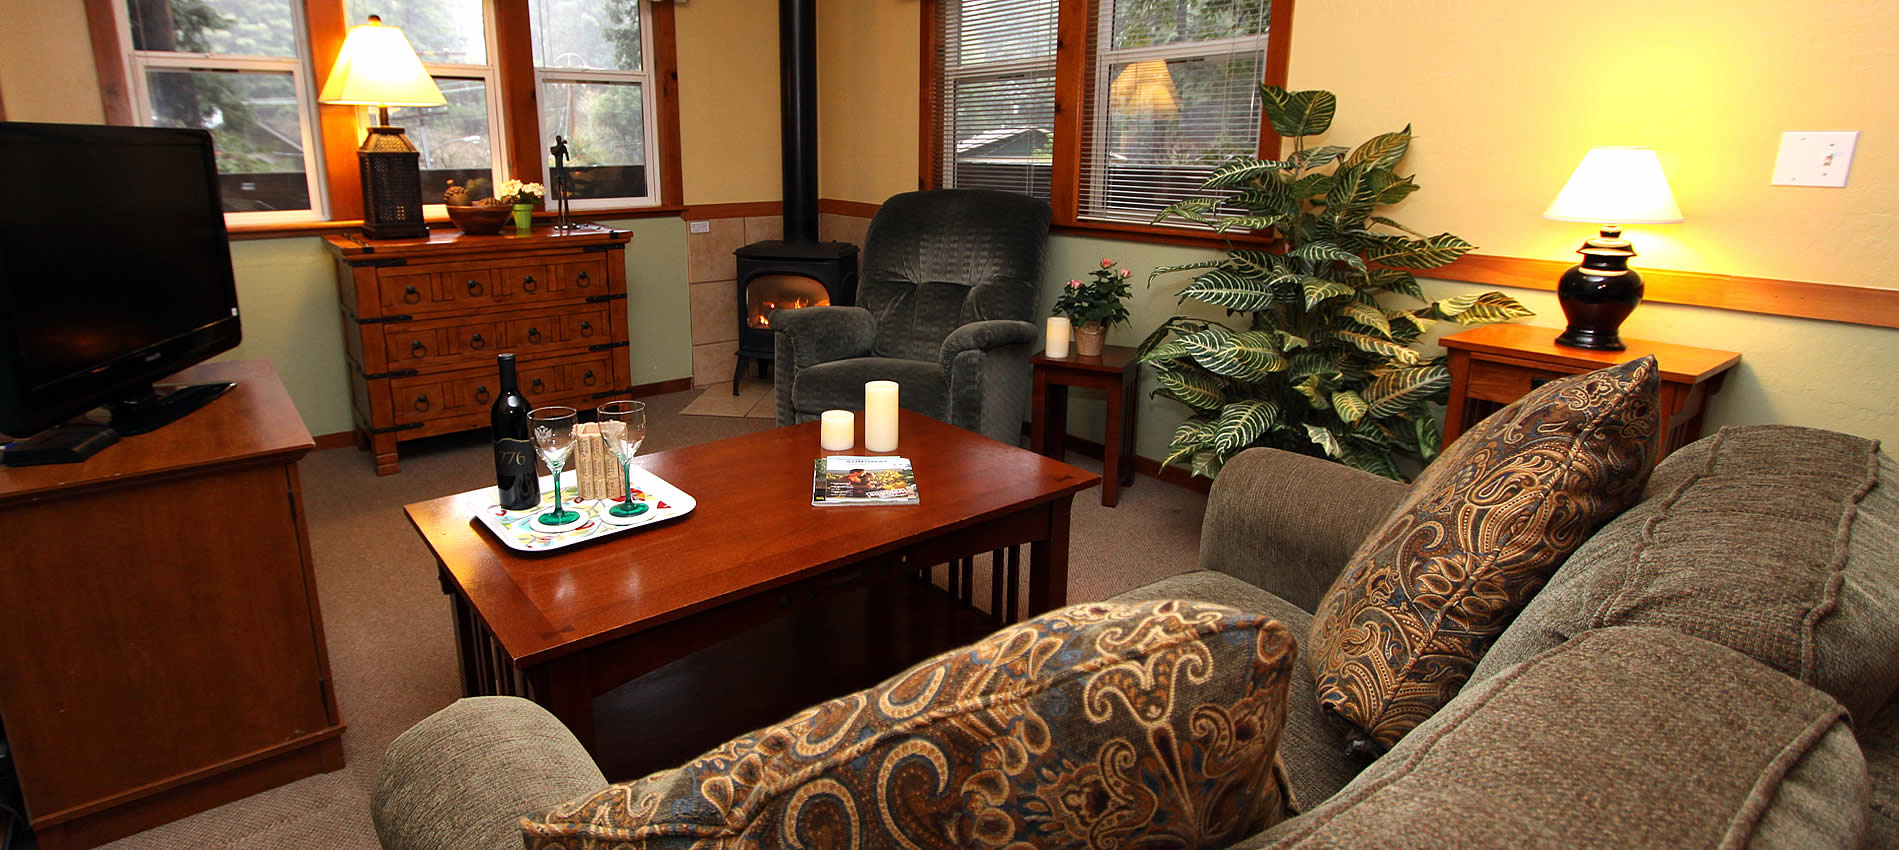 vacation cottages at russian river, one bedroom, living room and spa tub